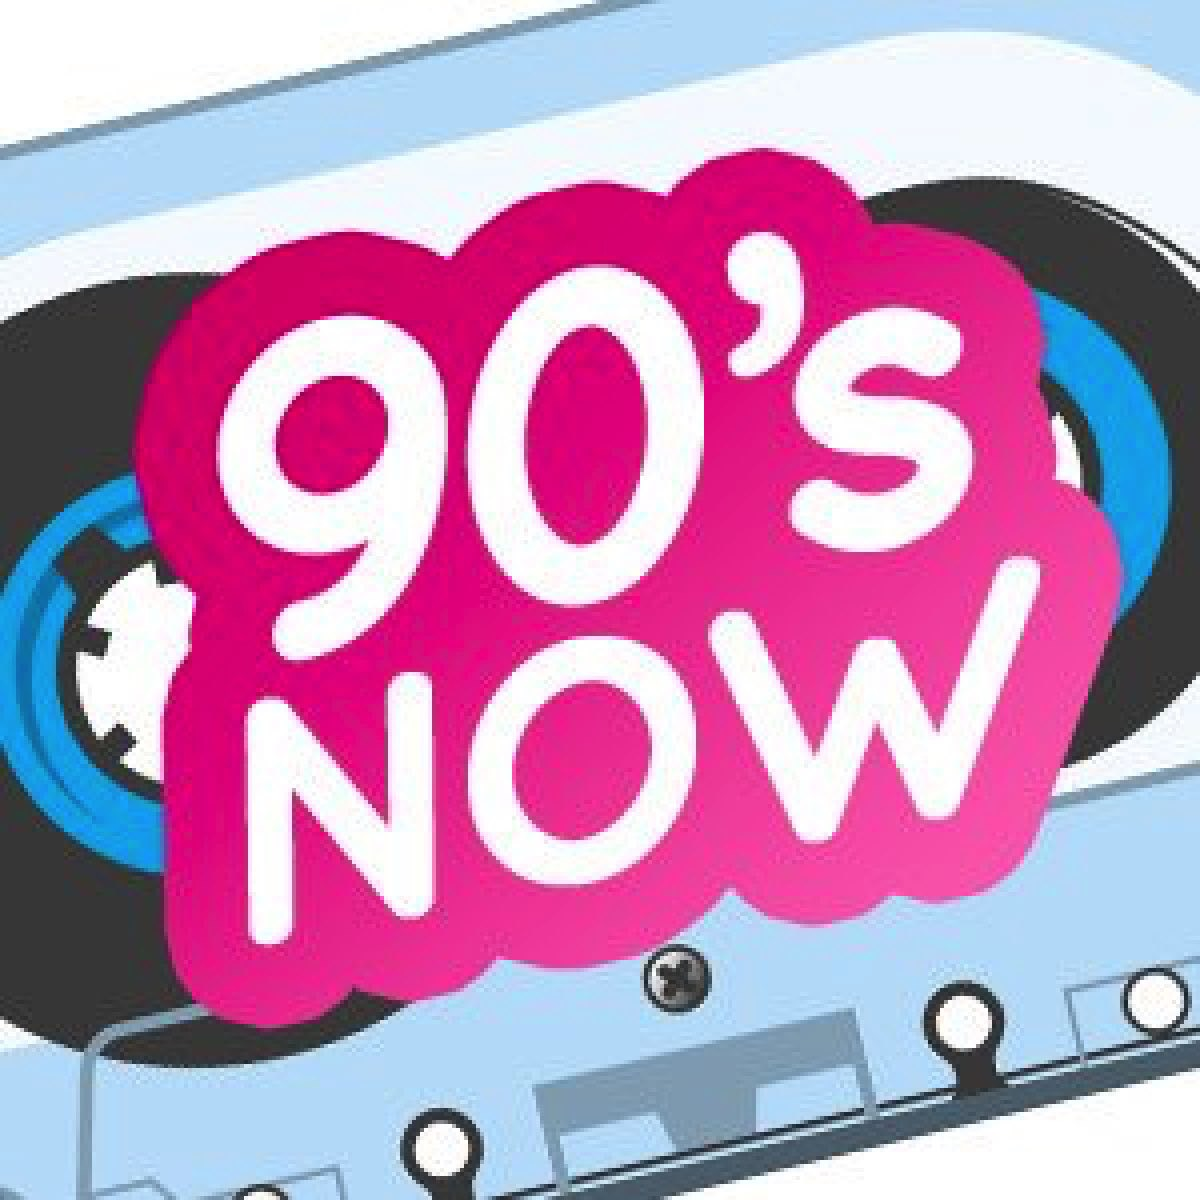 Episode 147: All Things Christmas on 90's NOW!